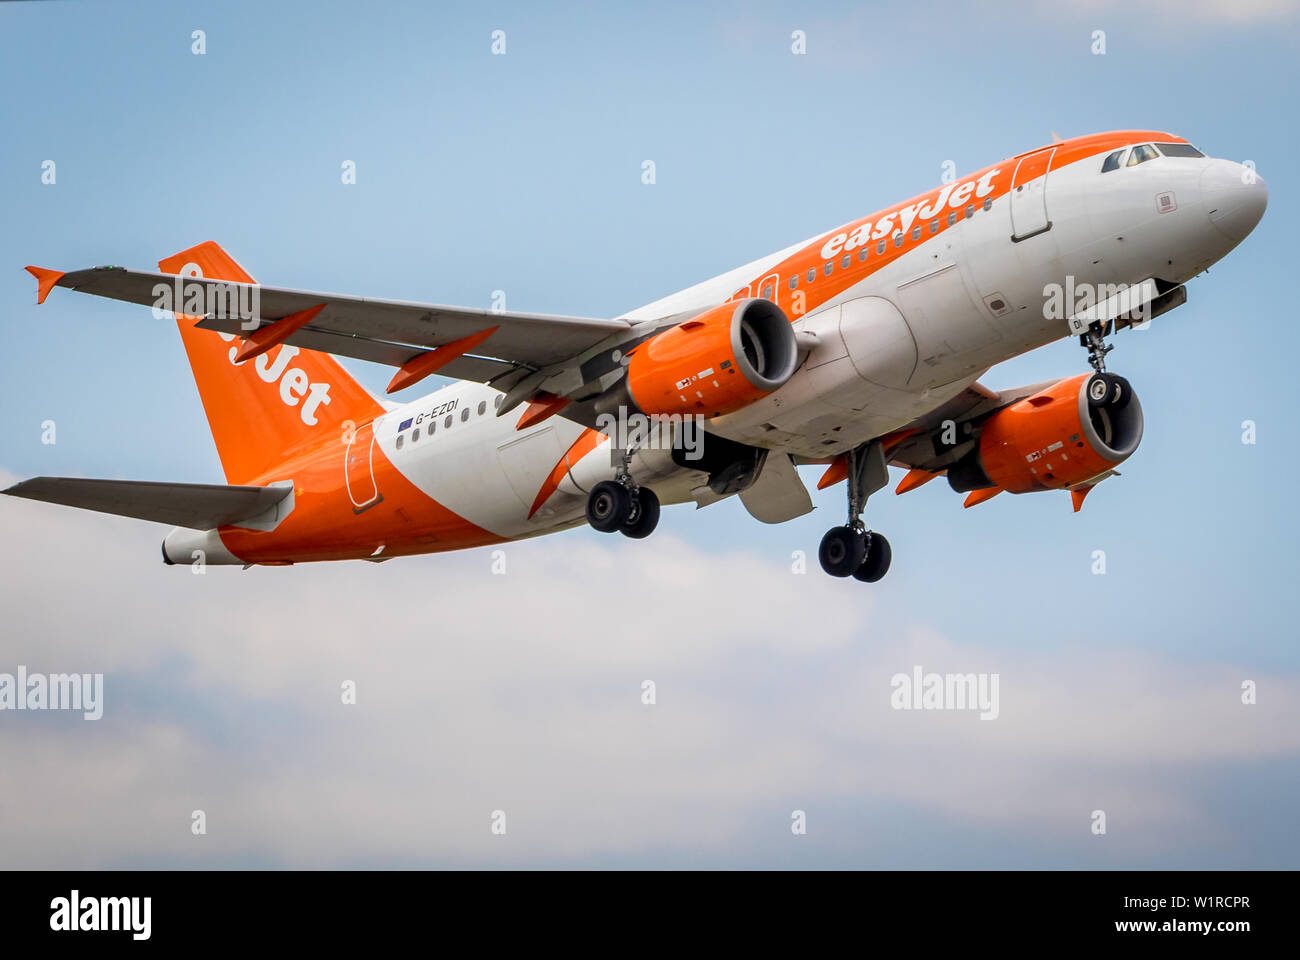 Aircraft taking off from London Gatwick Airport  UK. - Stock Image